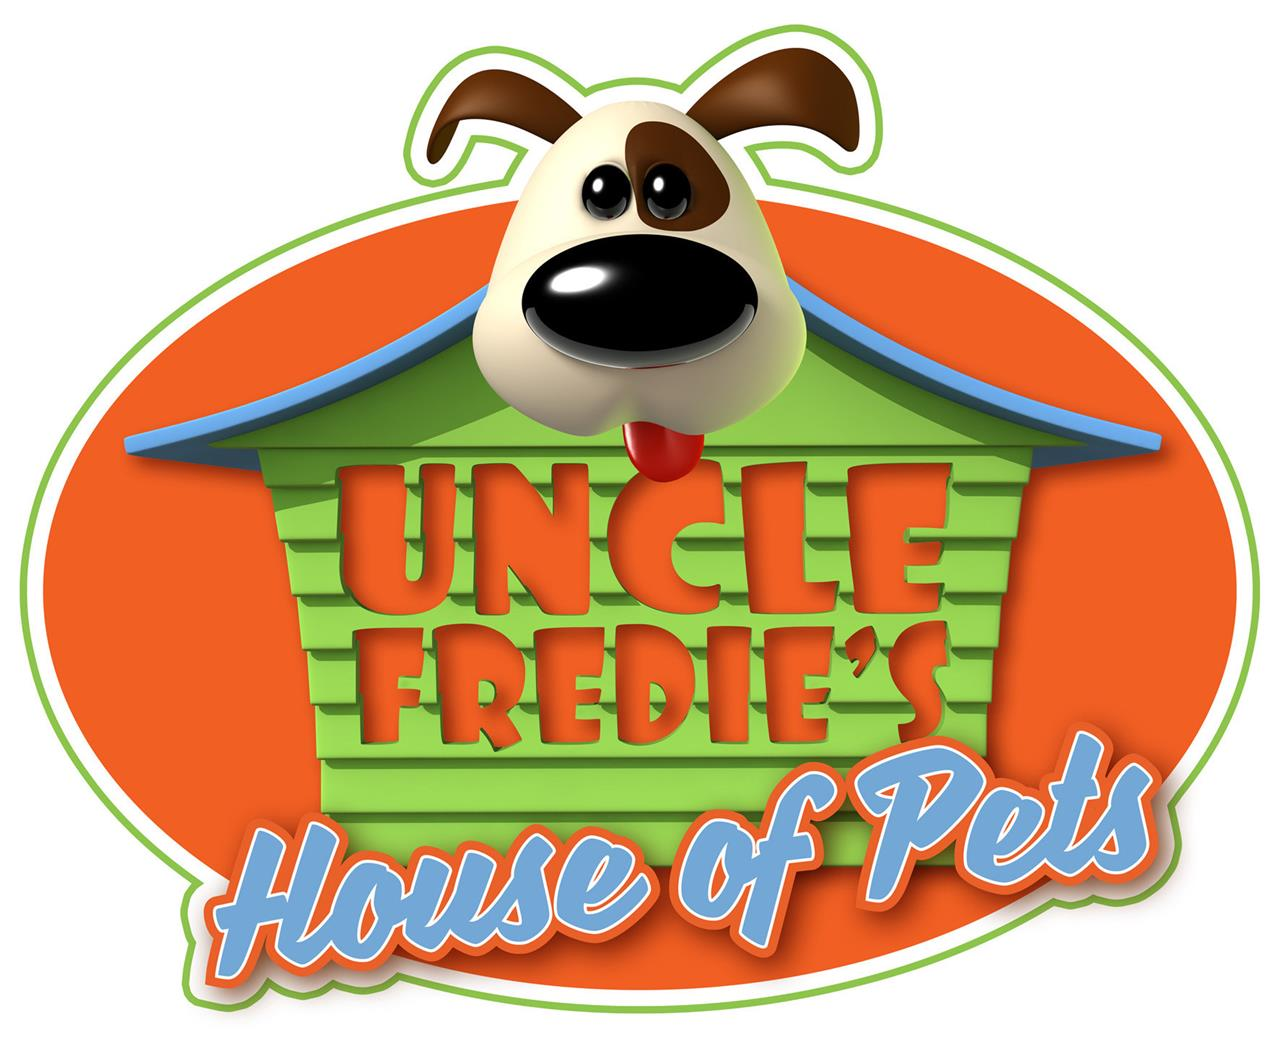 uncle fredies, pet boarding and grooming